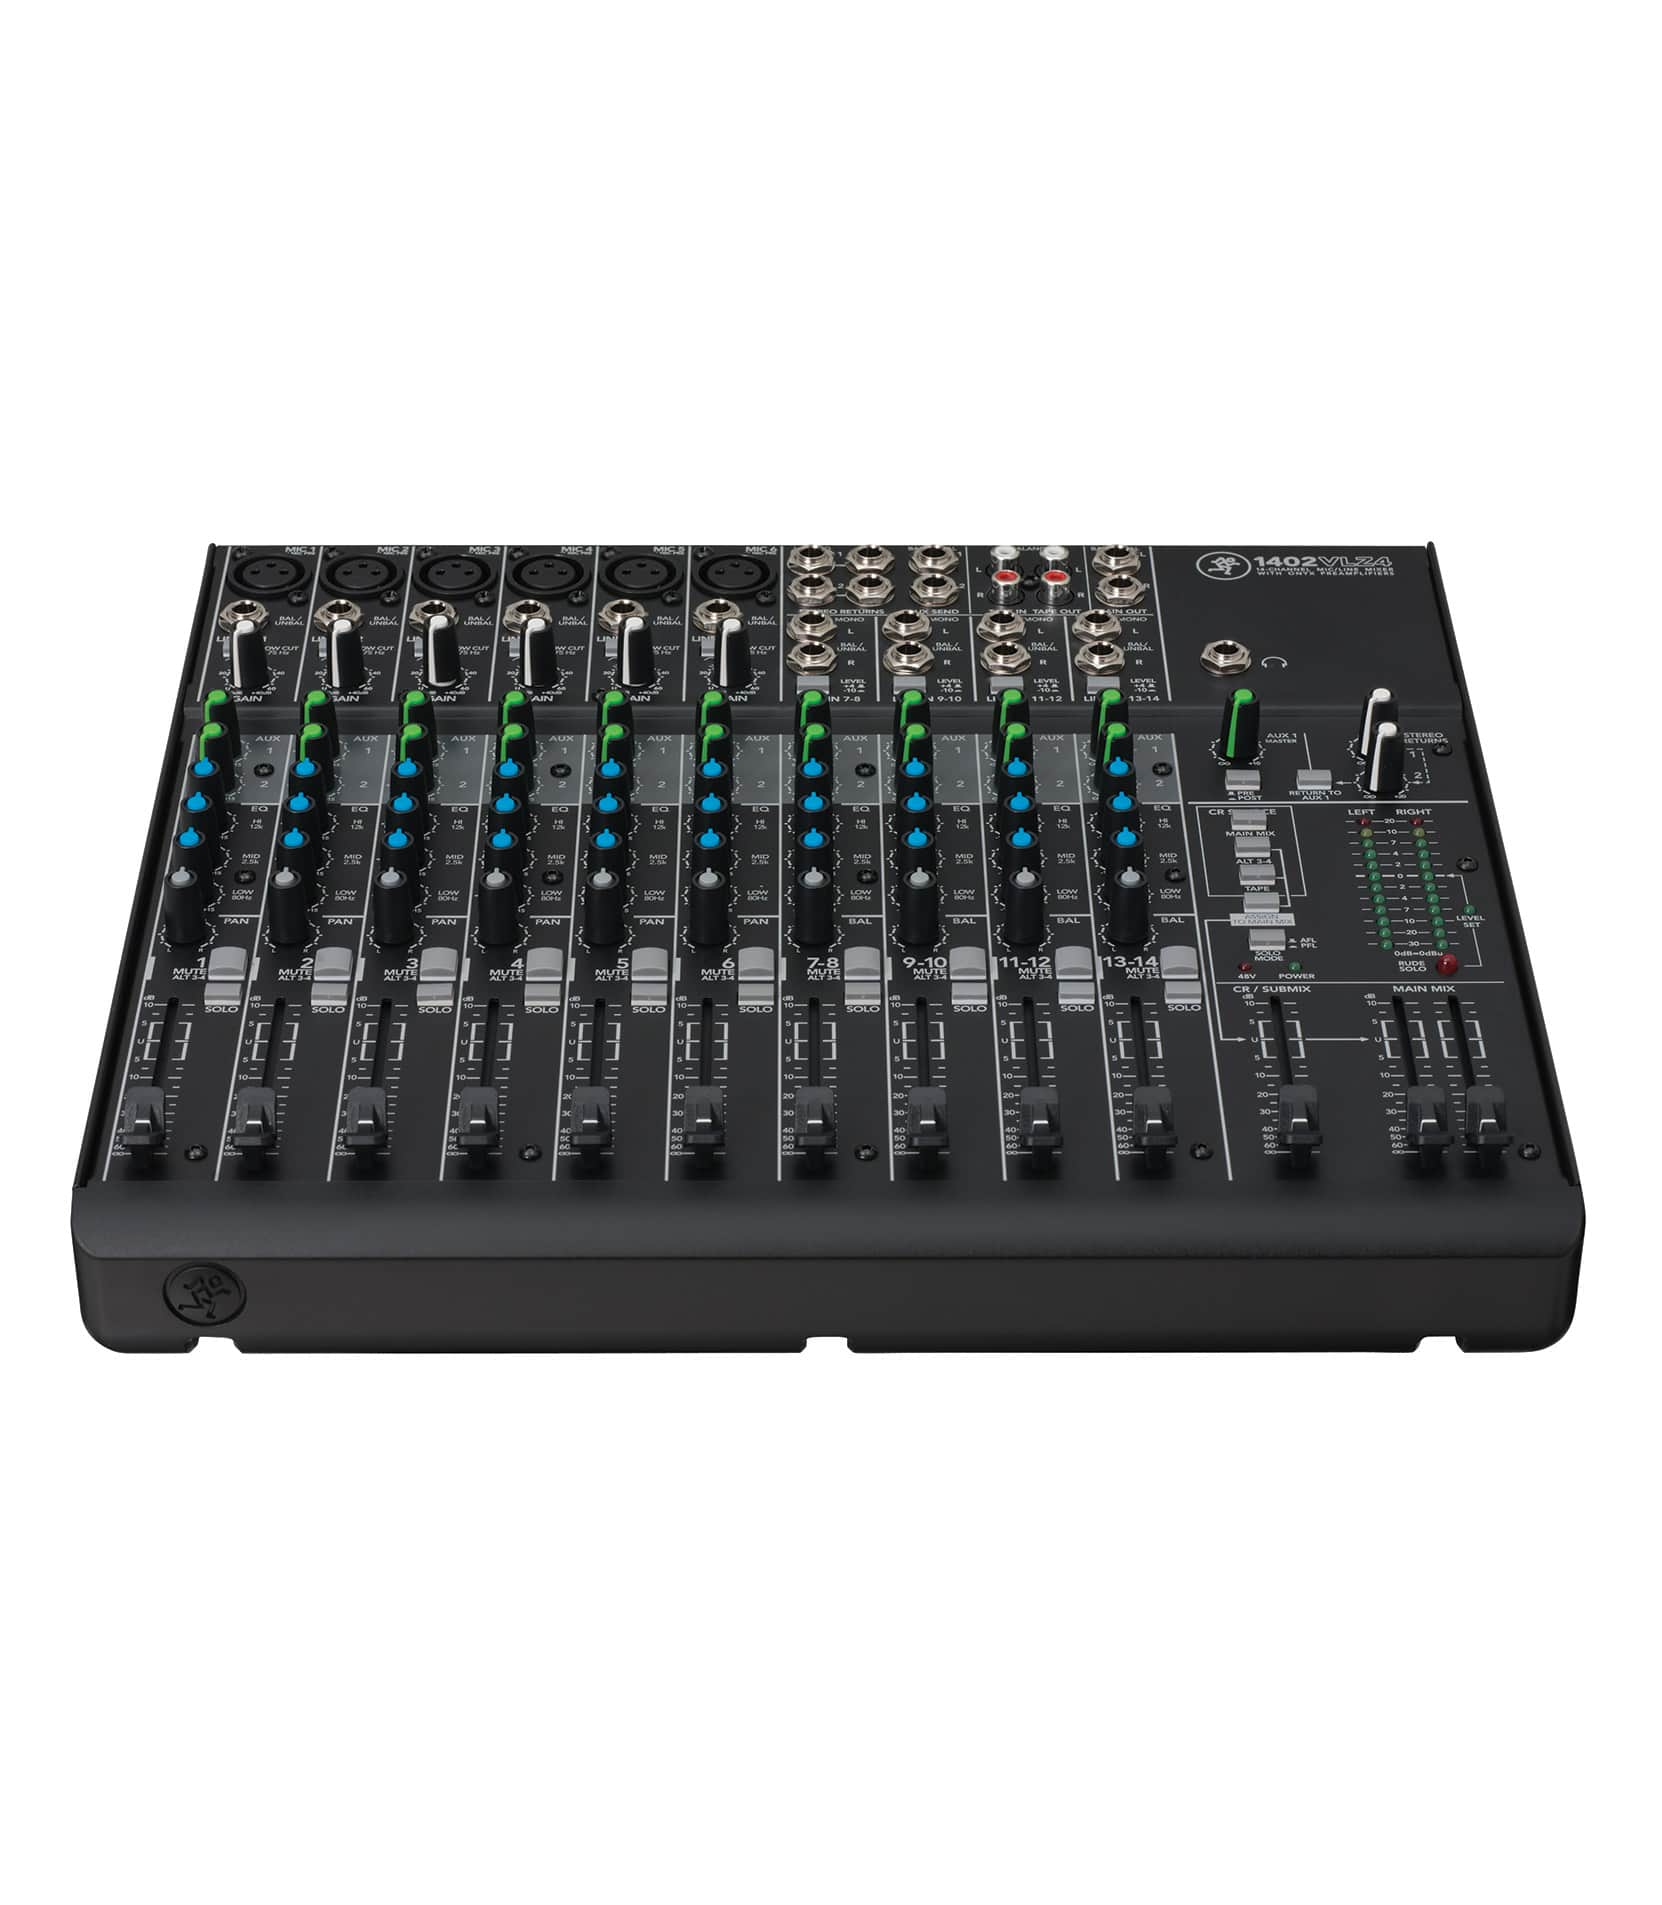 1402VLZ4 14 channel Compact Mixer - Buy Online